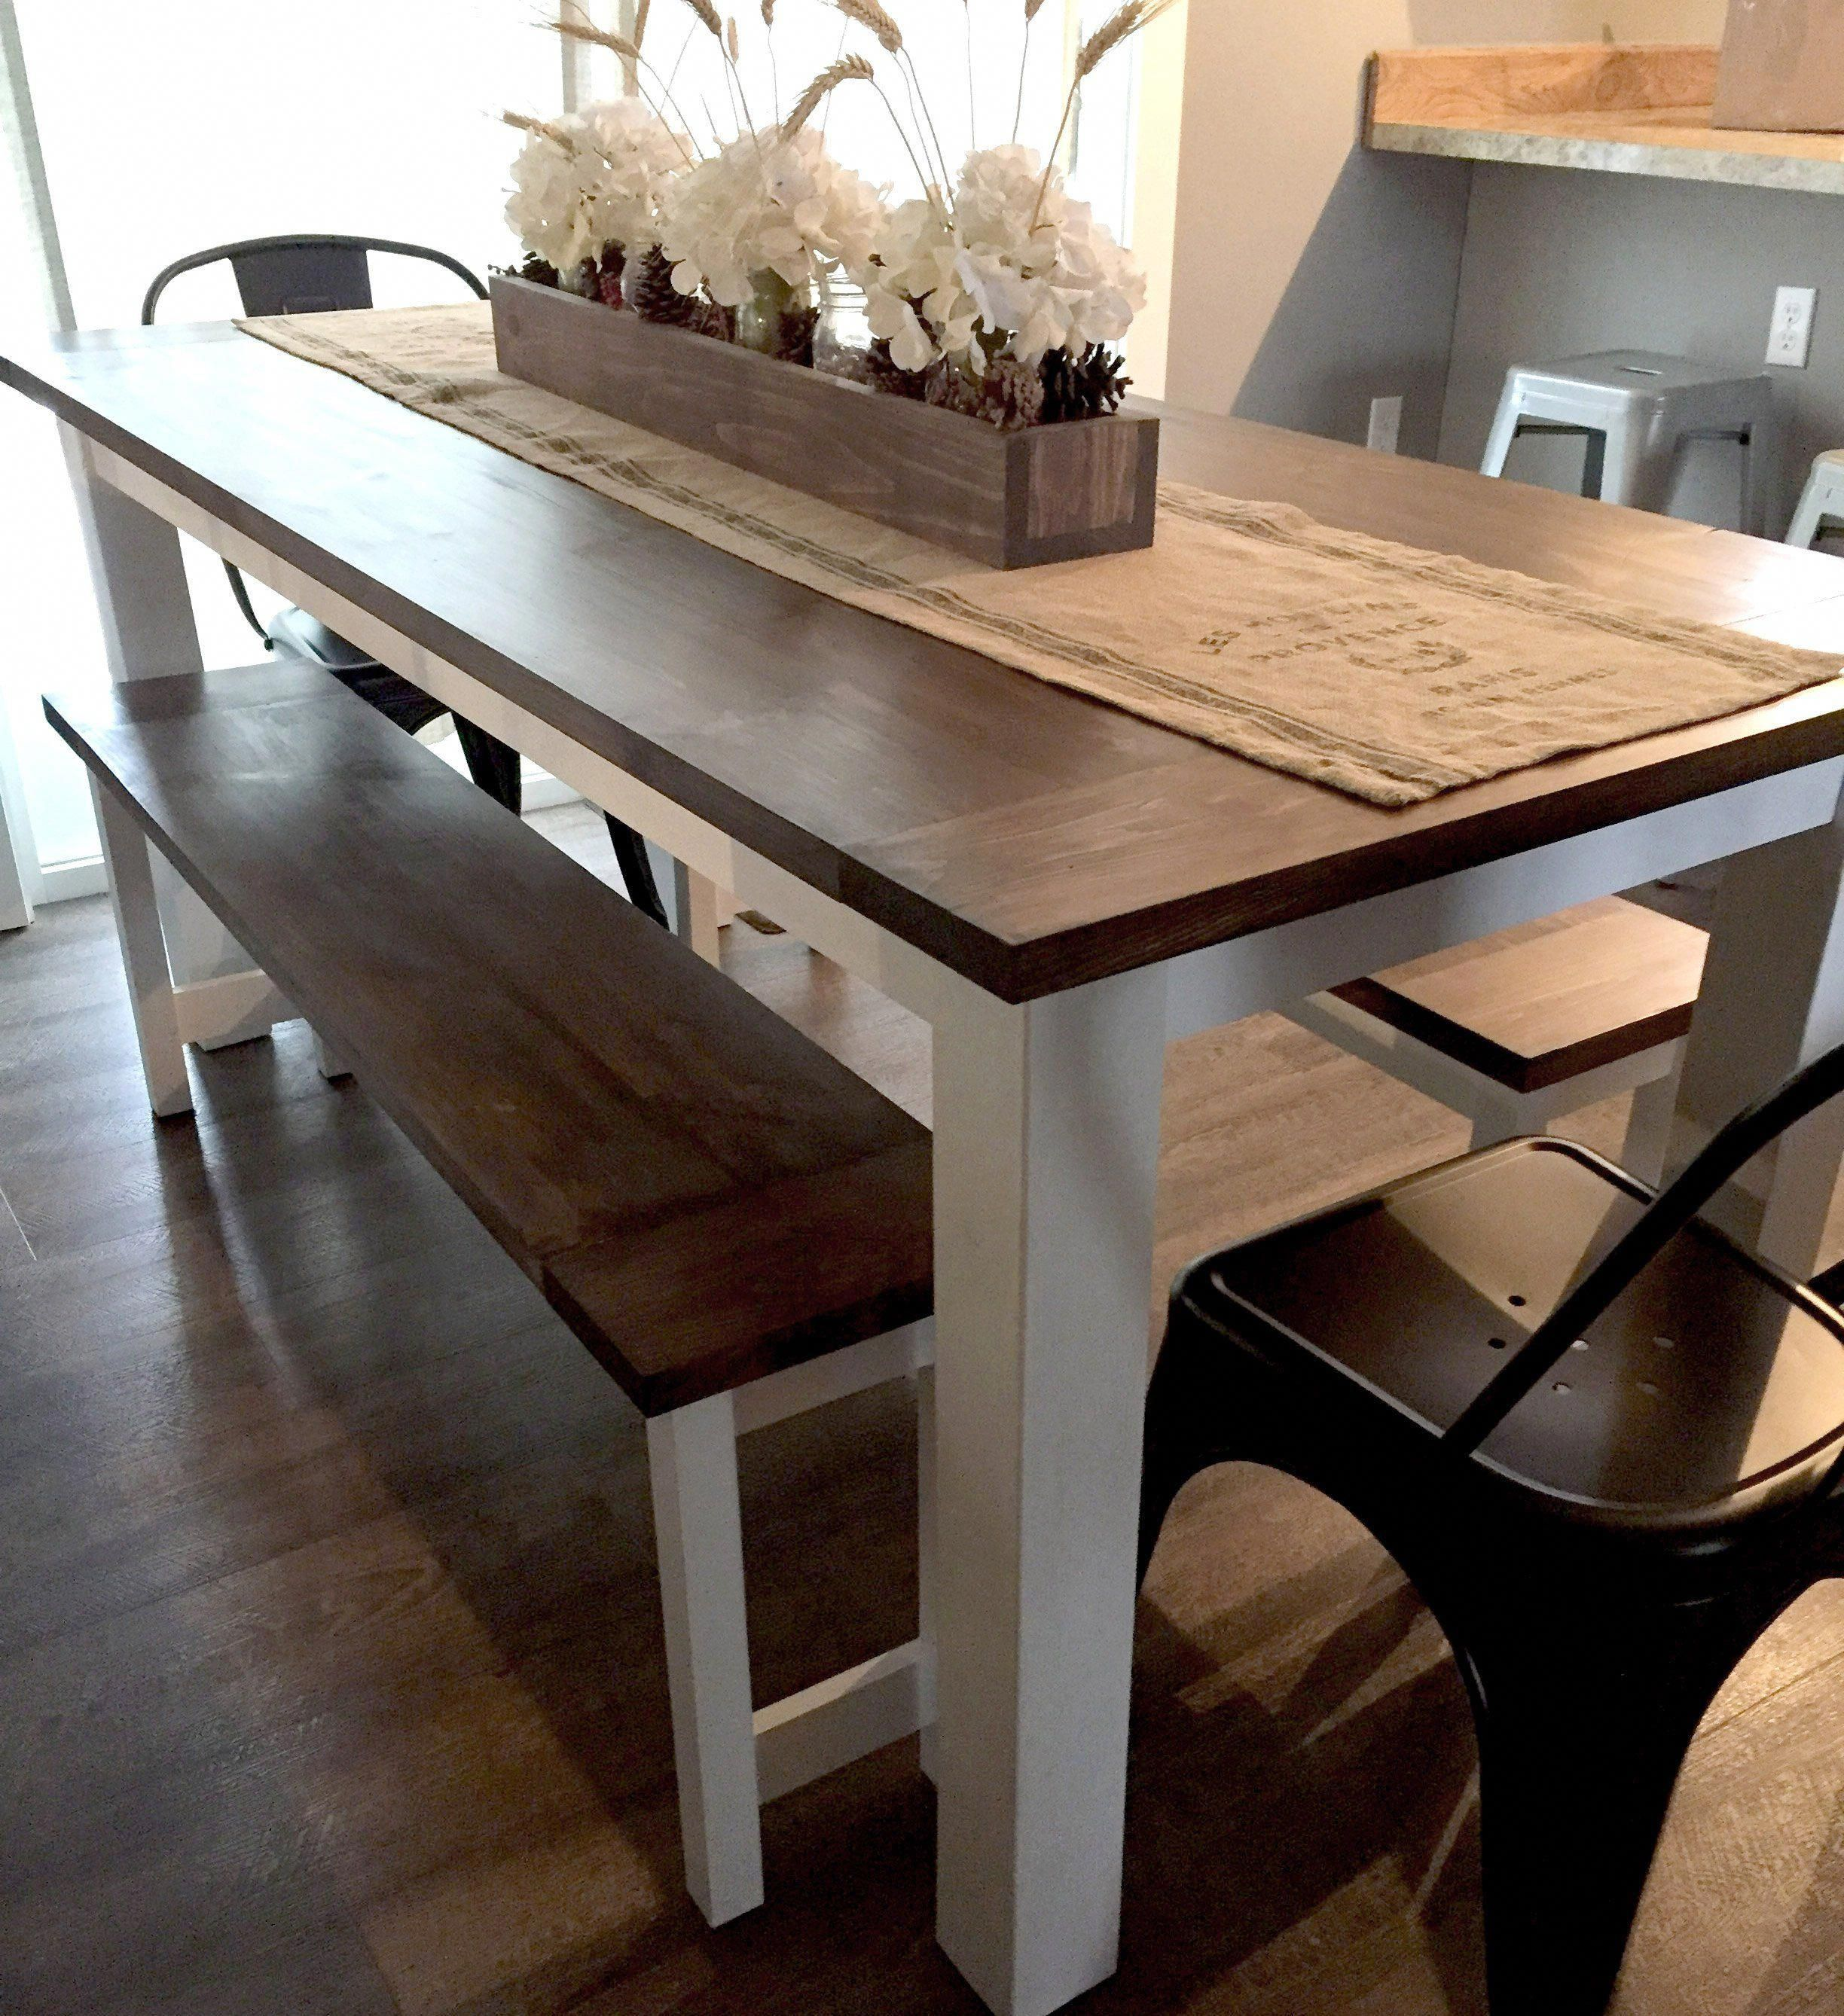 Diy farmhouse table plans with benches woodworking plans